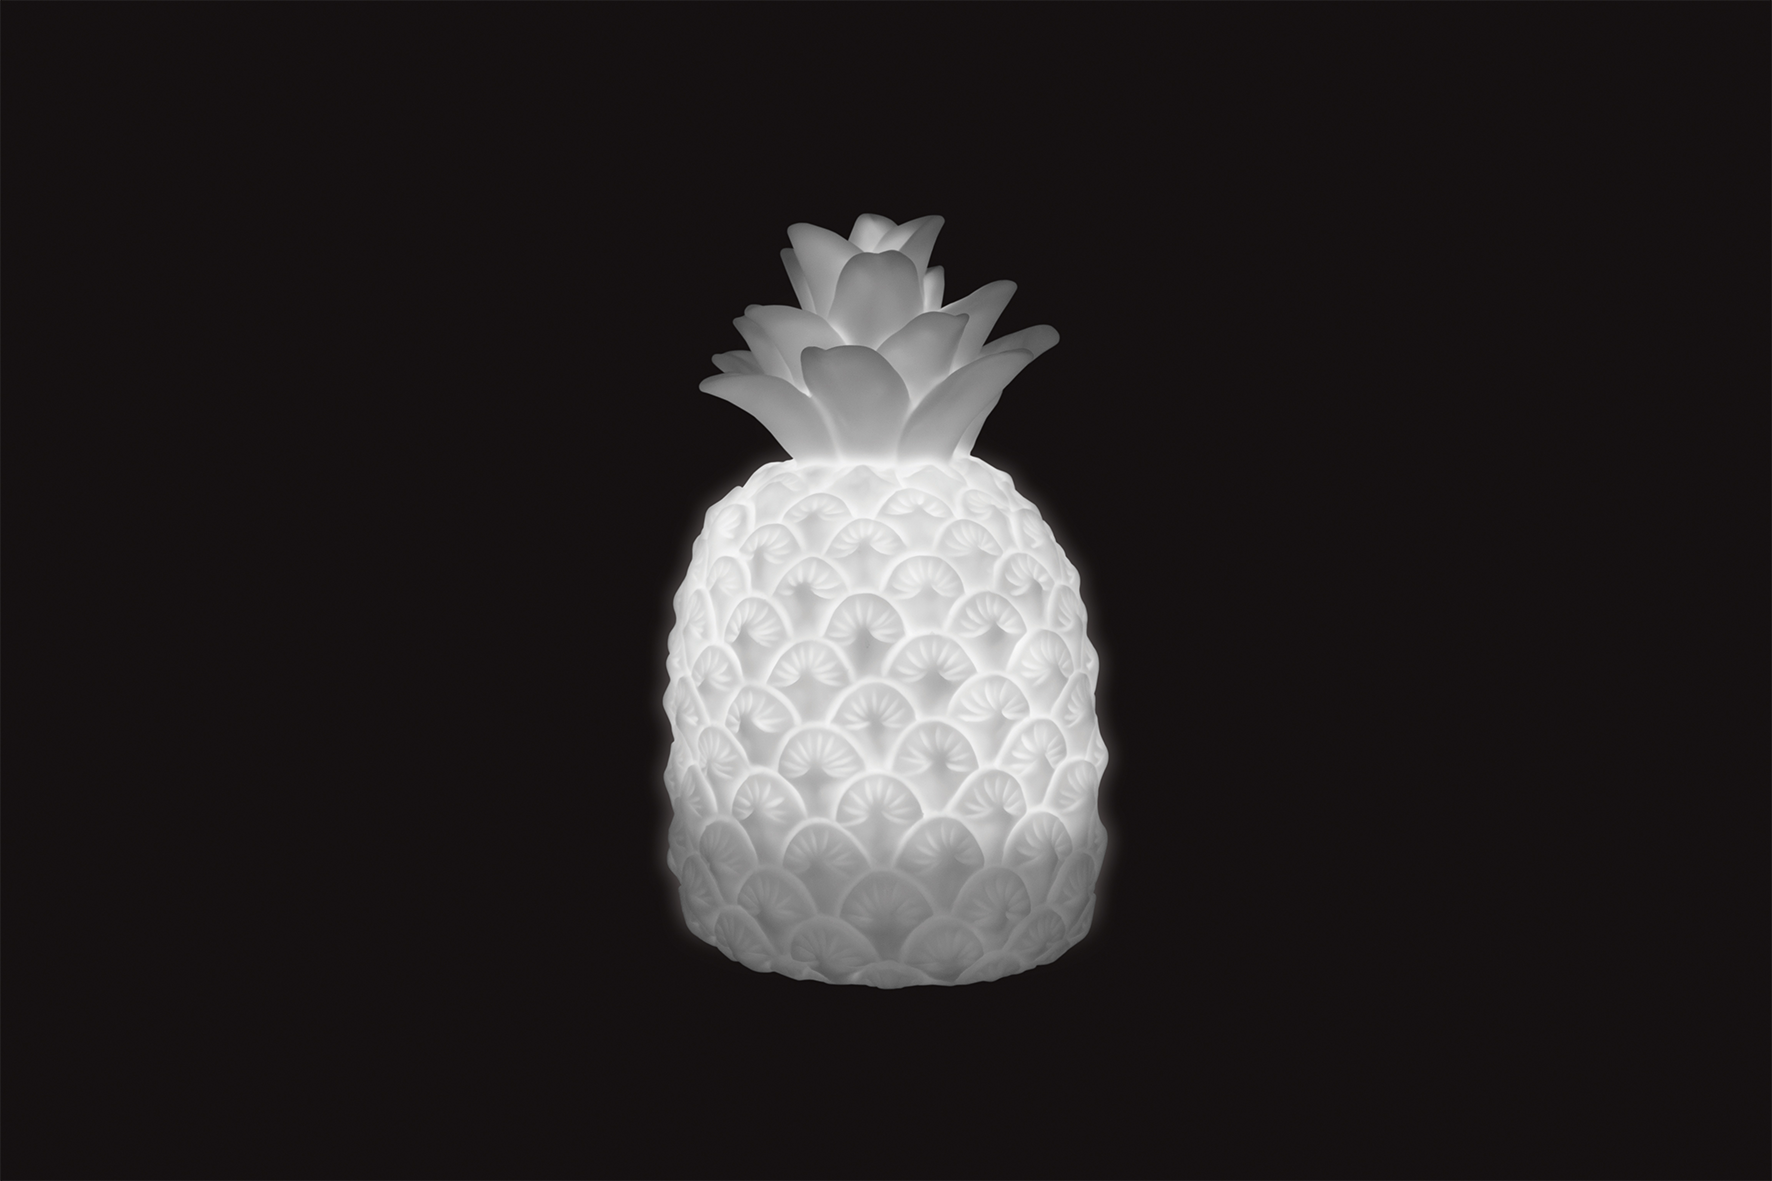 Läs mer om Pineapple Mood Light